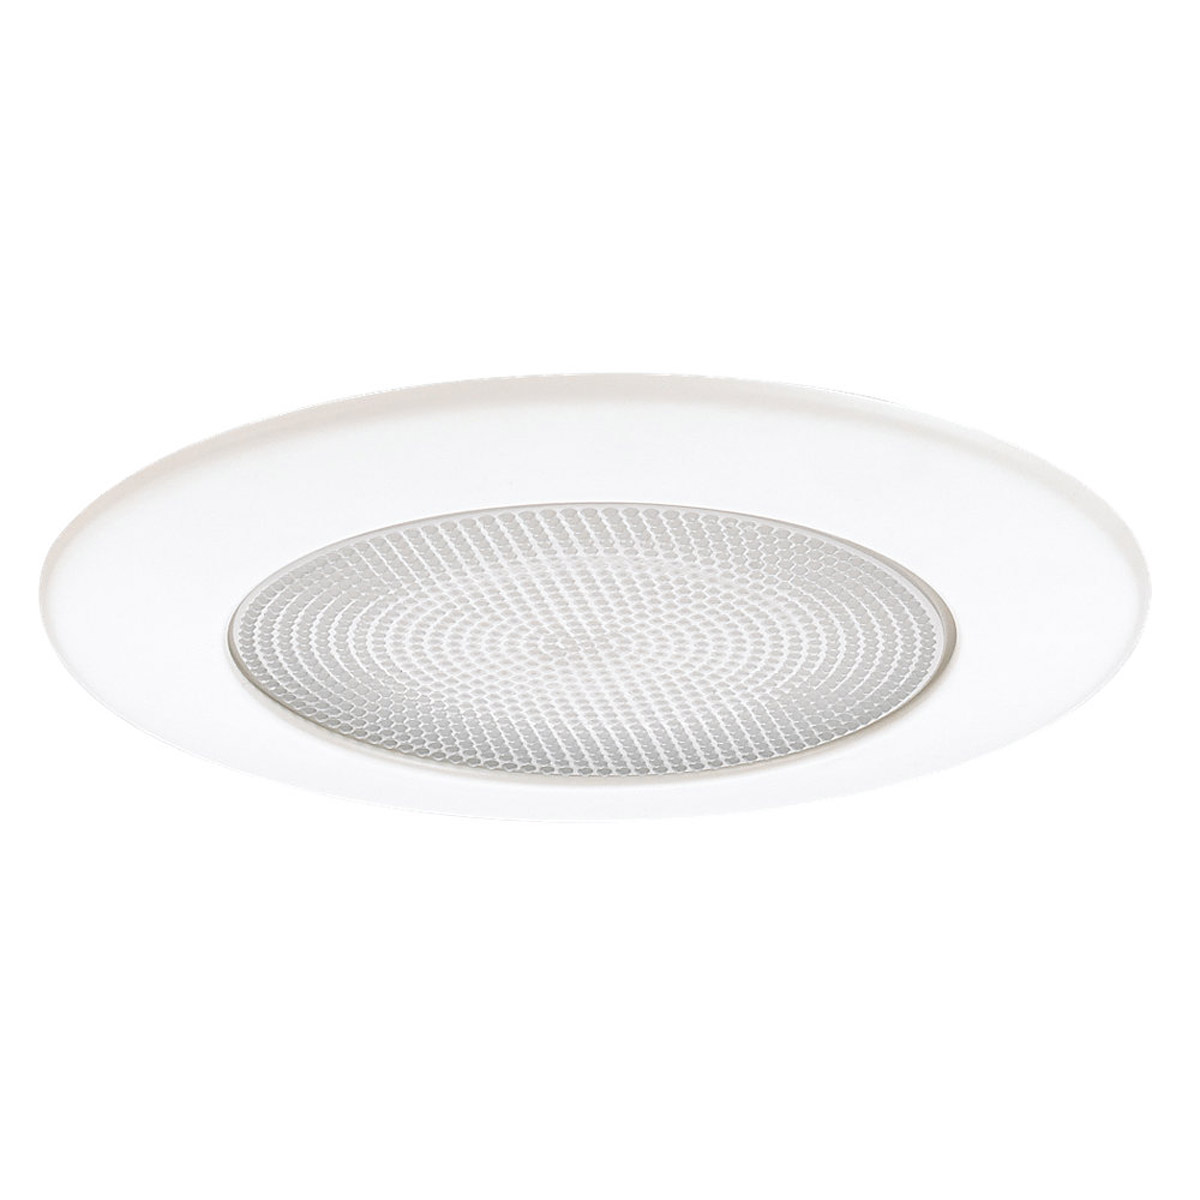 Sea Gull Lighting Signature Recessed Trim Only in White 11135AT-15